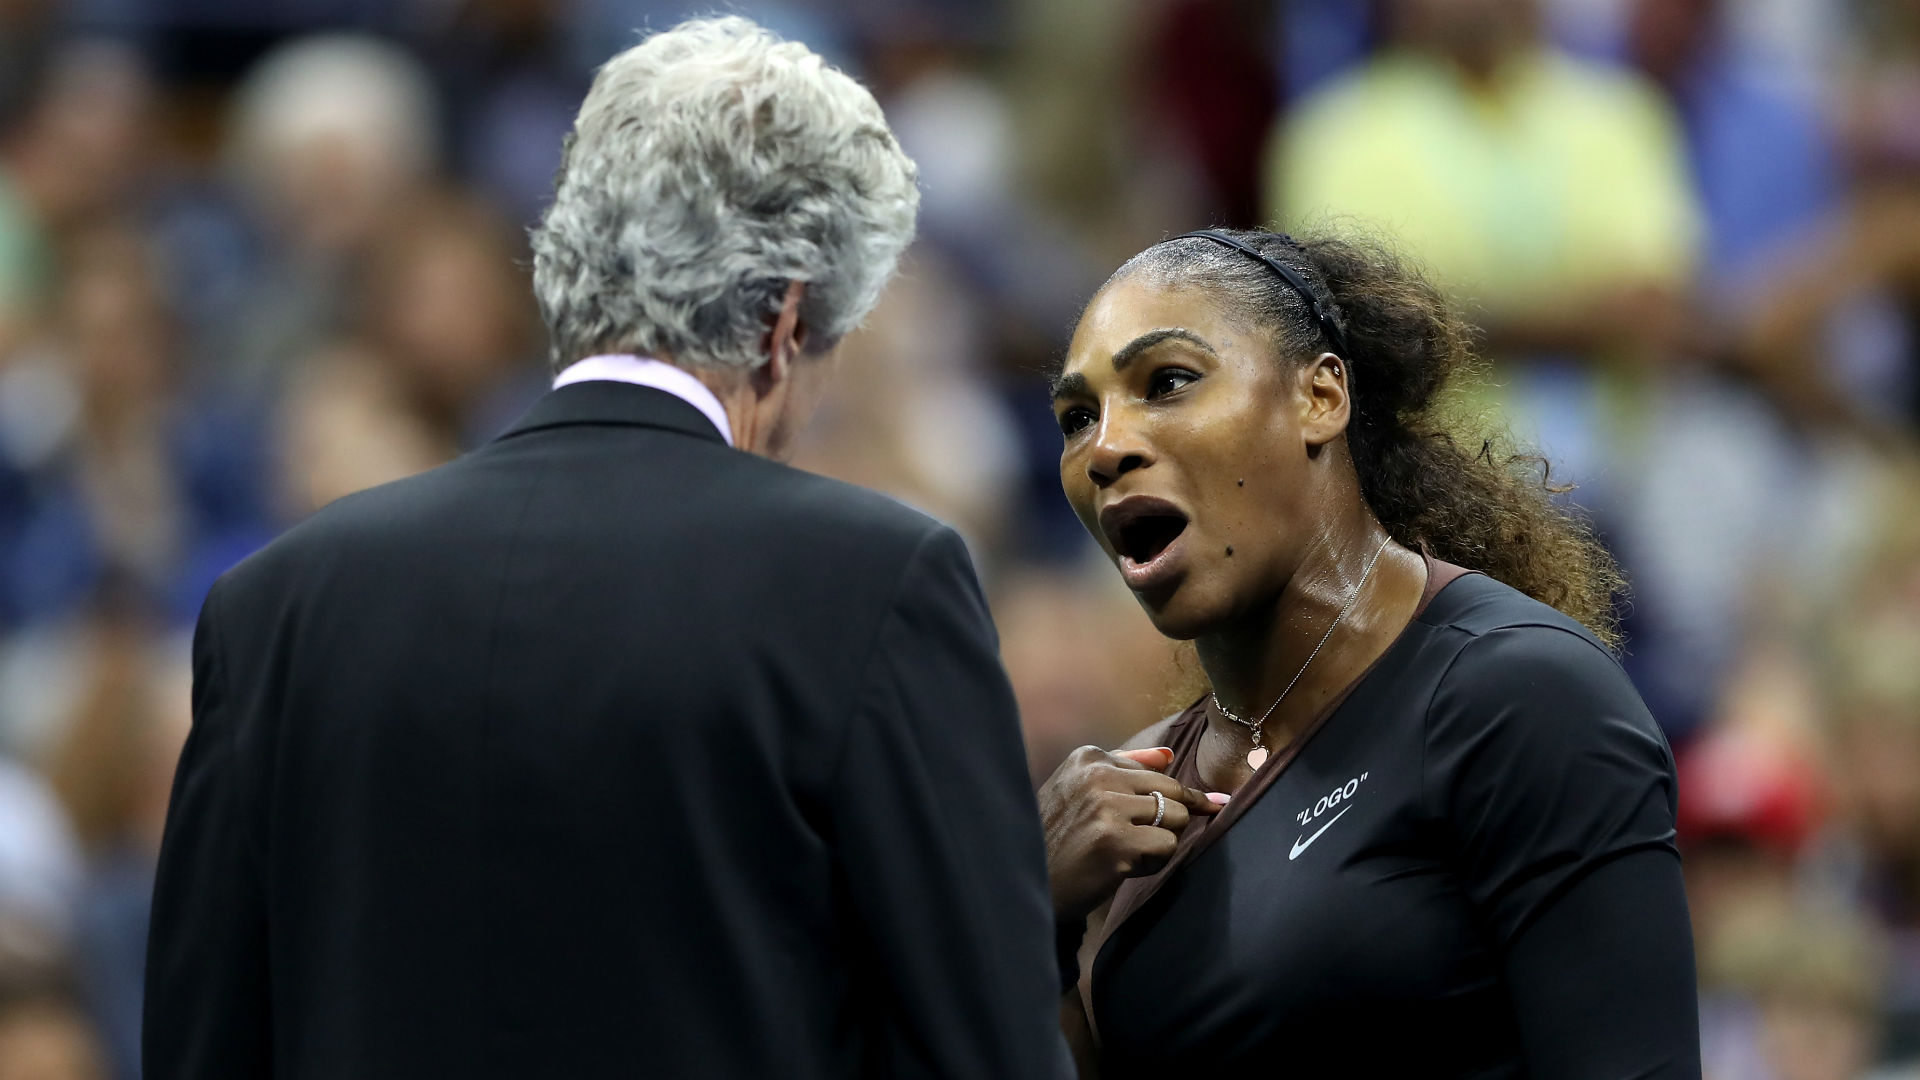 'We Never Had Signals': Serena Williams Disputes Coaching Claims From US Open